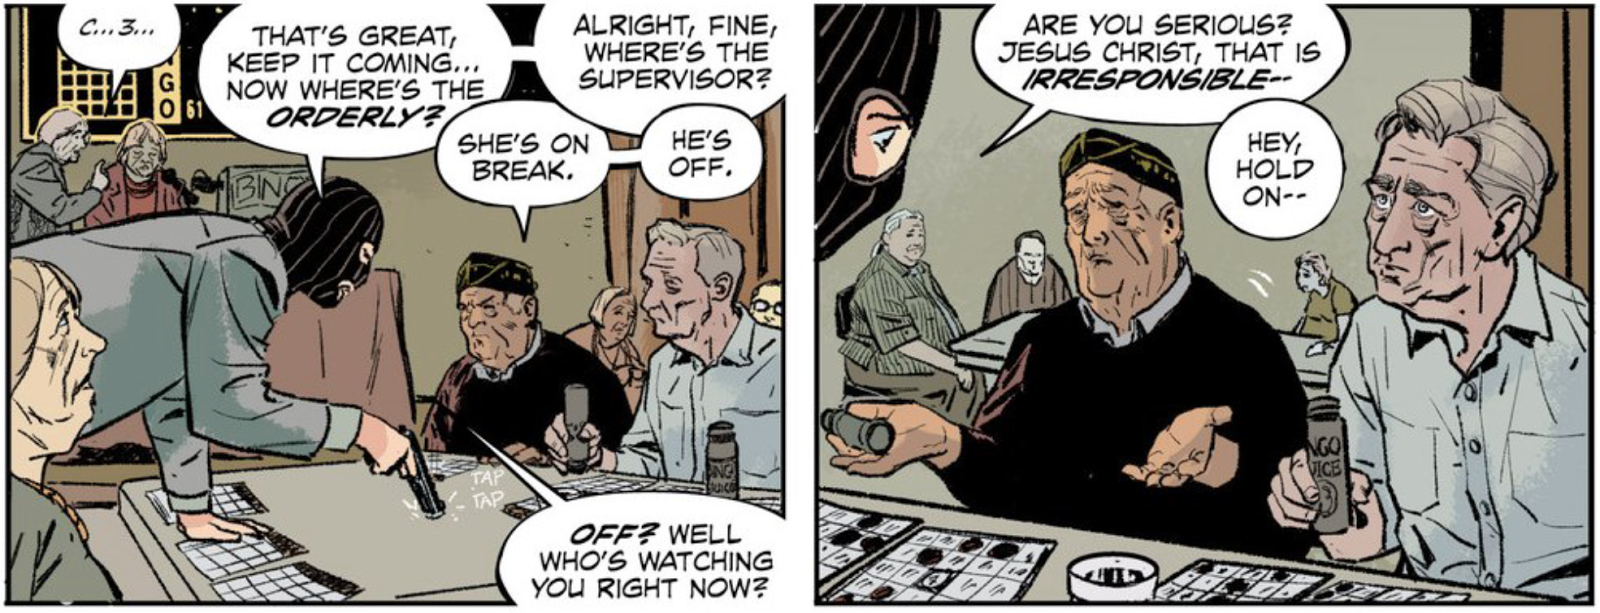 The Fix Is A Comic Book About The World's Worst Criminals